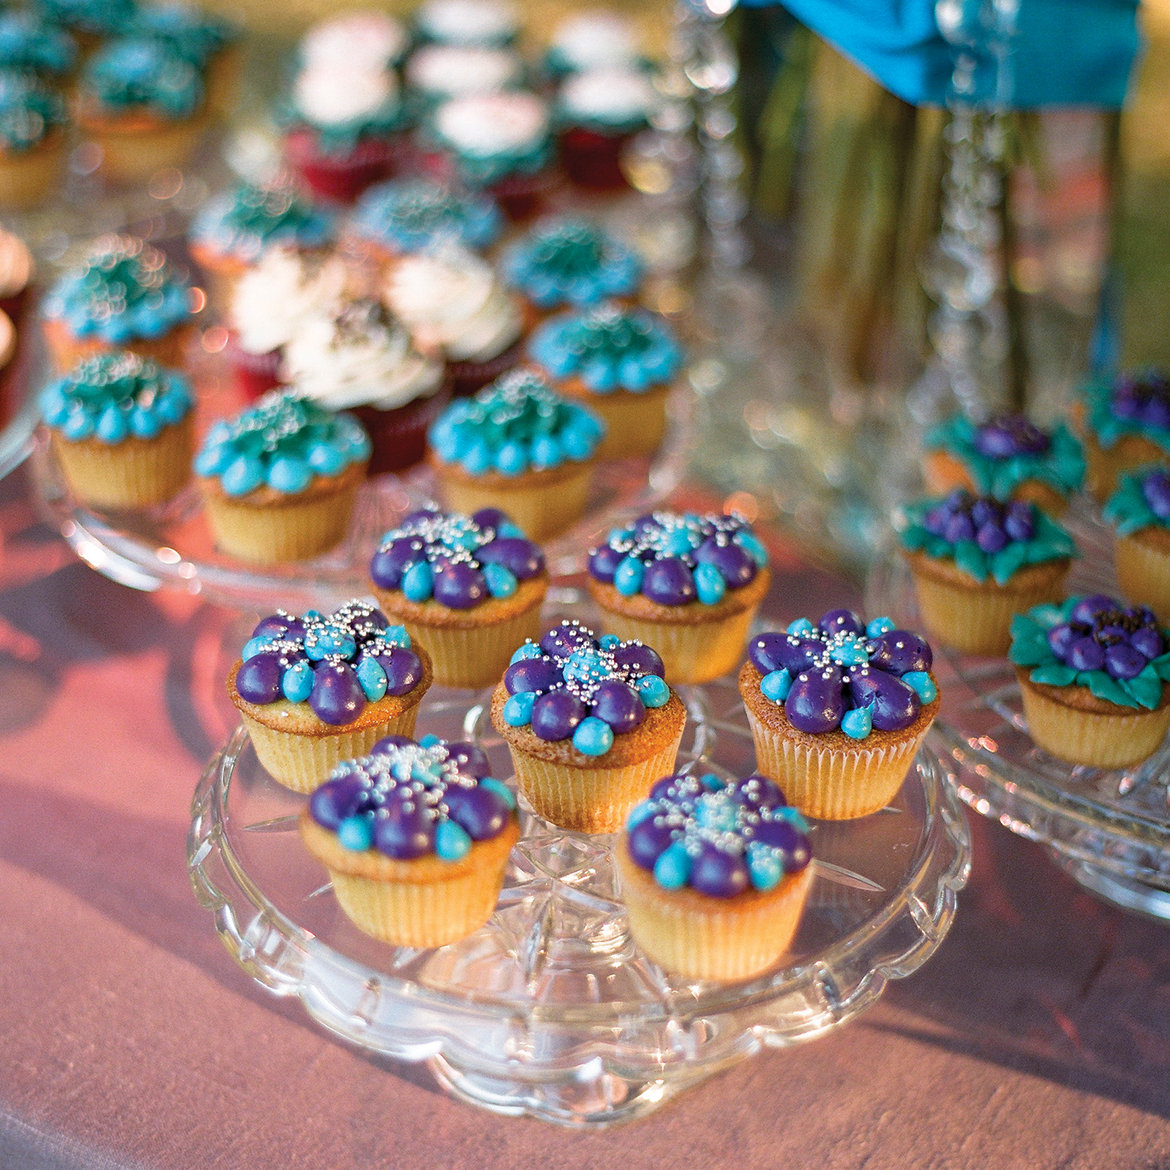 75 Ways to Throw a Luxury Wedding on a Budget - cupcakes